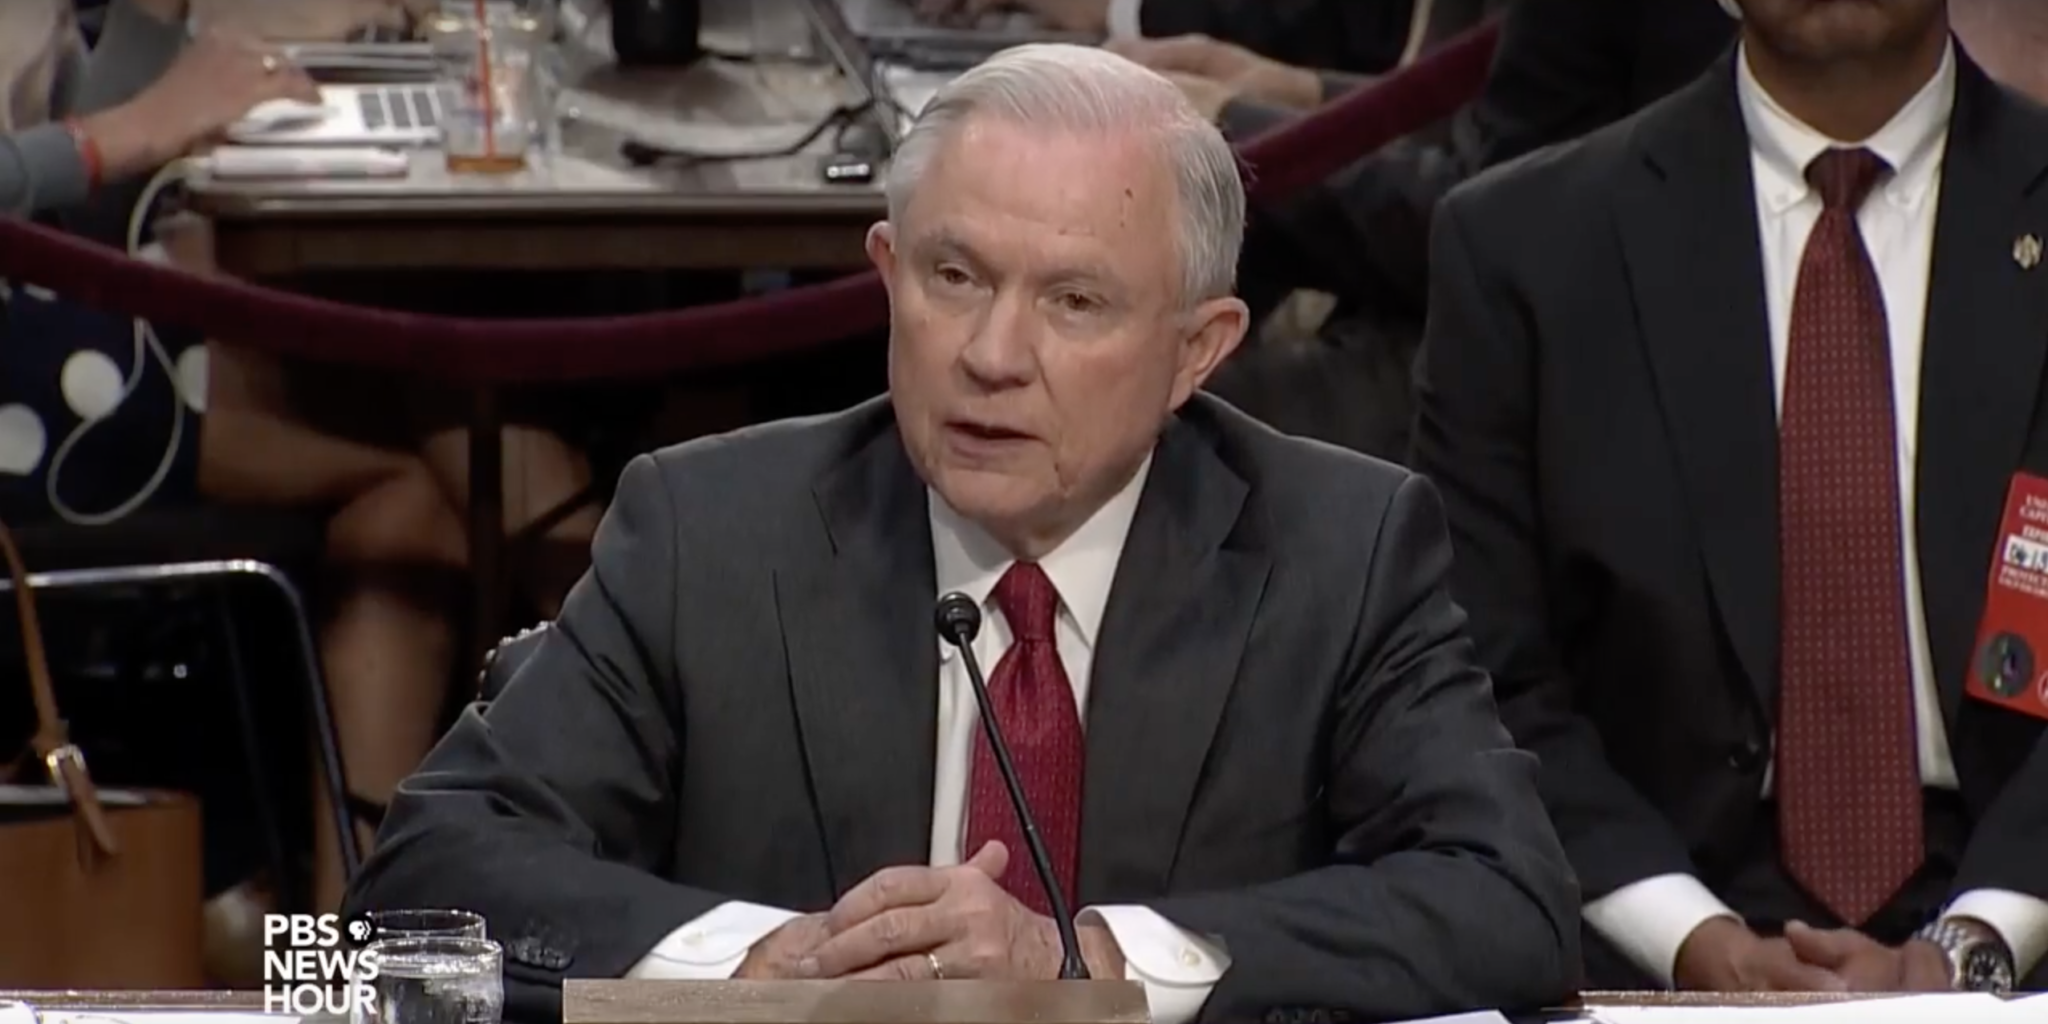 Jeff Sessions Testimony Before Senate Intelligence Committee